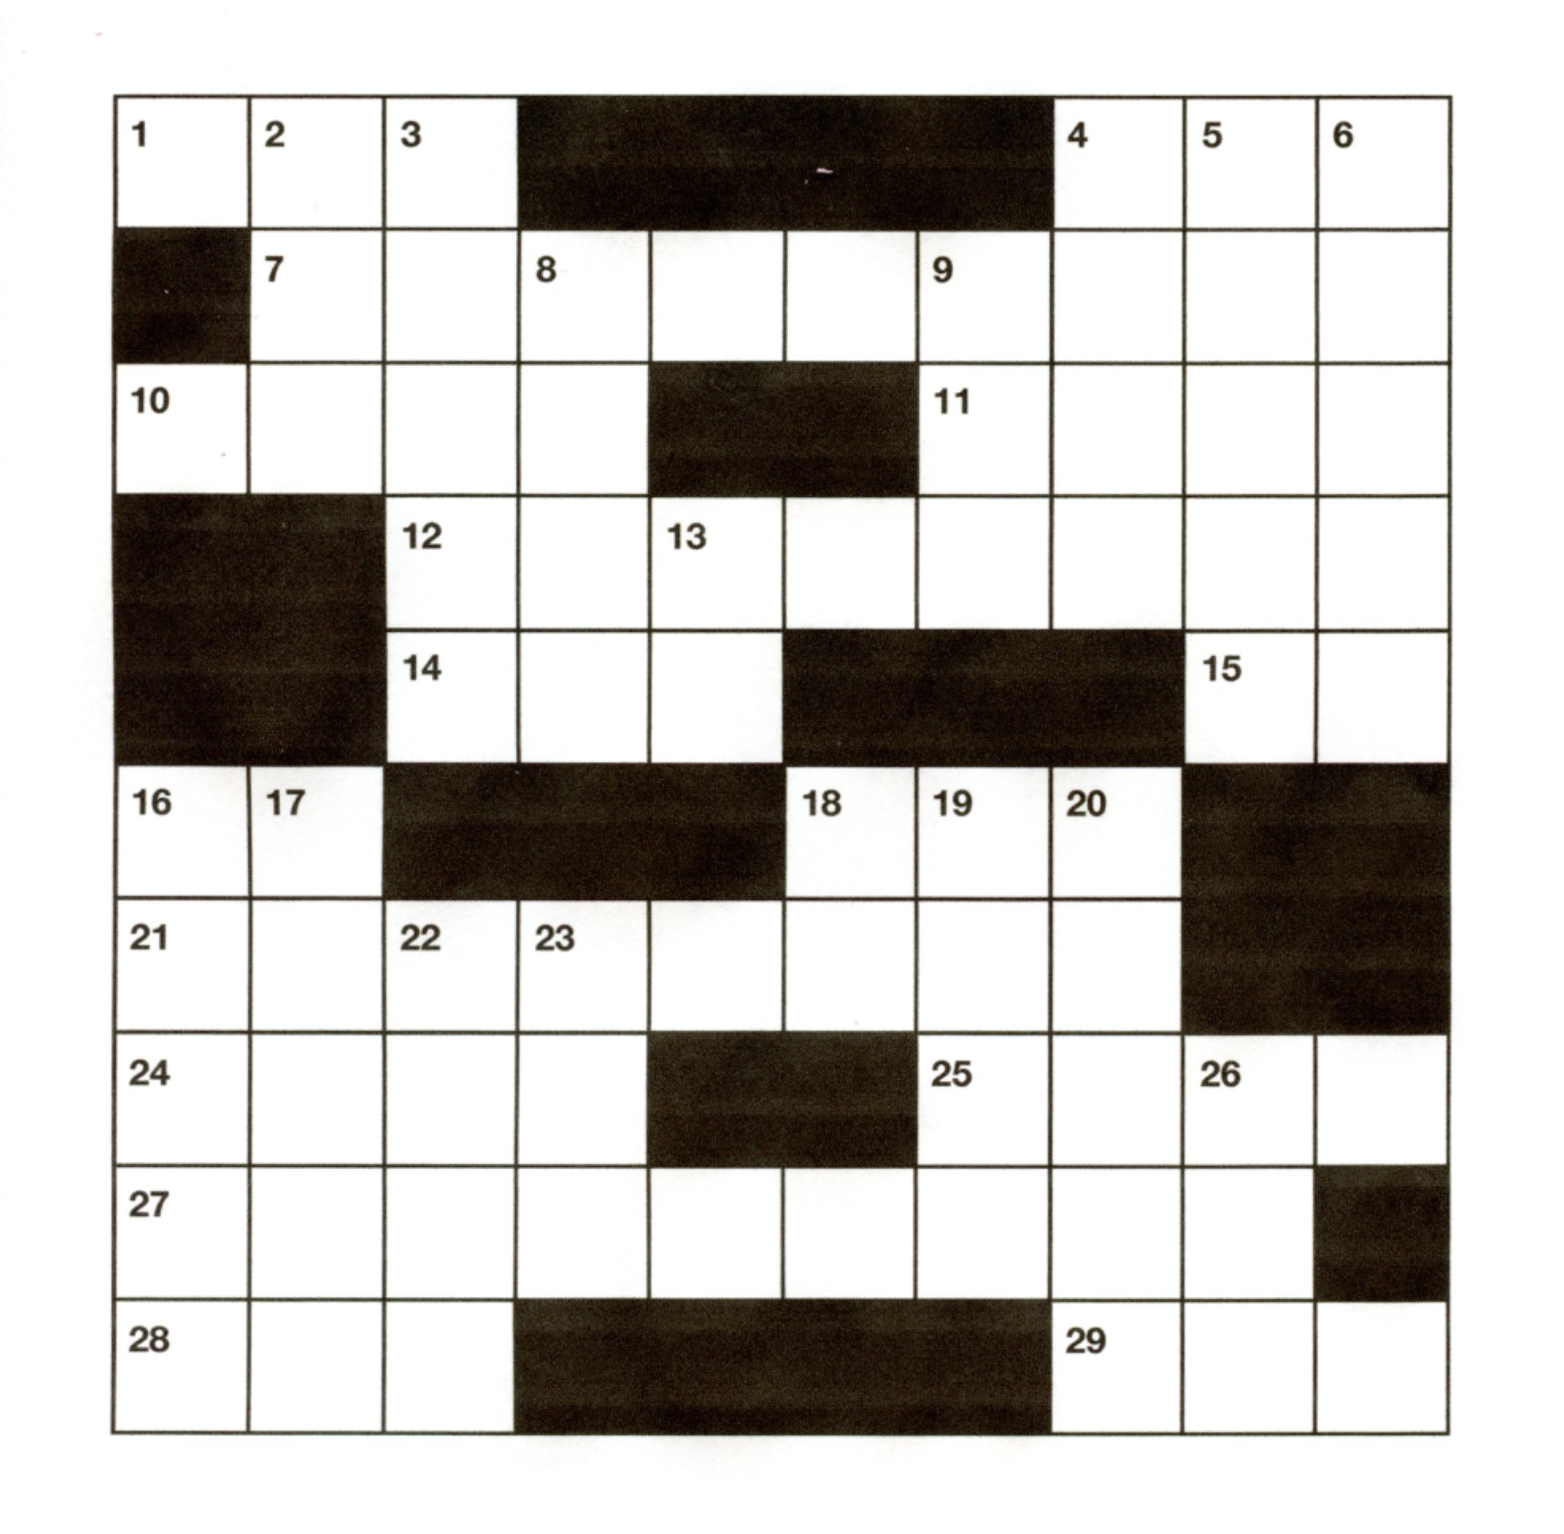 FEBRUARY CATSKILL CROSSWORD ANSWERS - March 2020